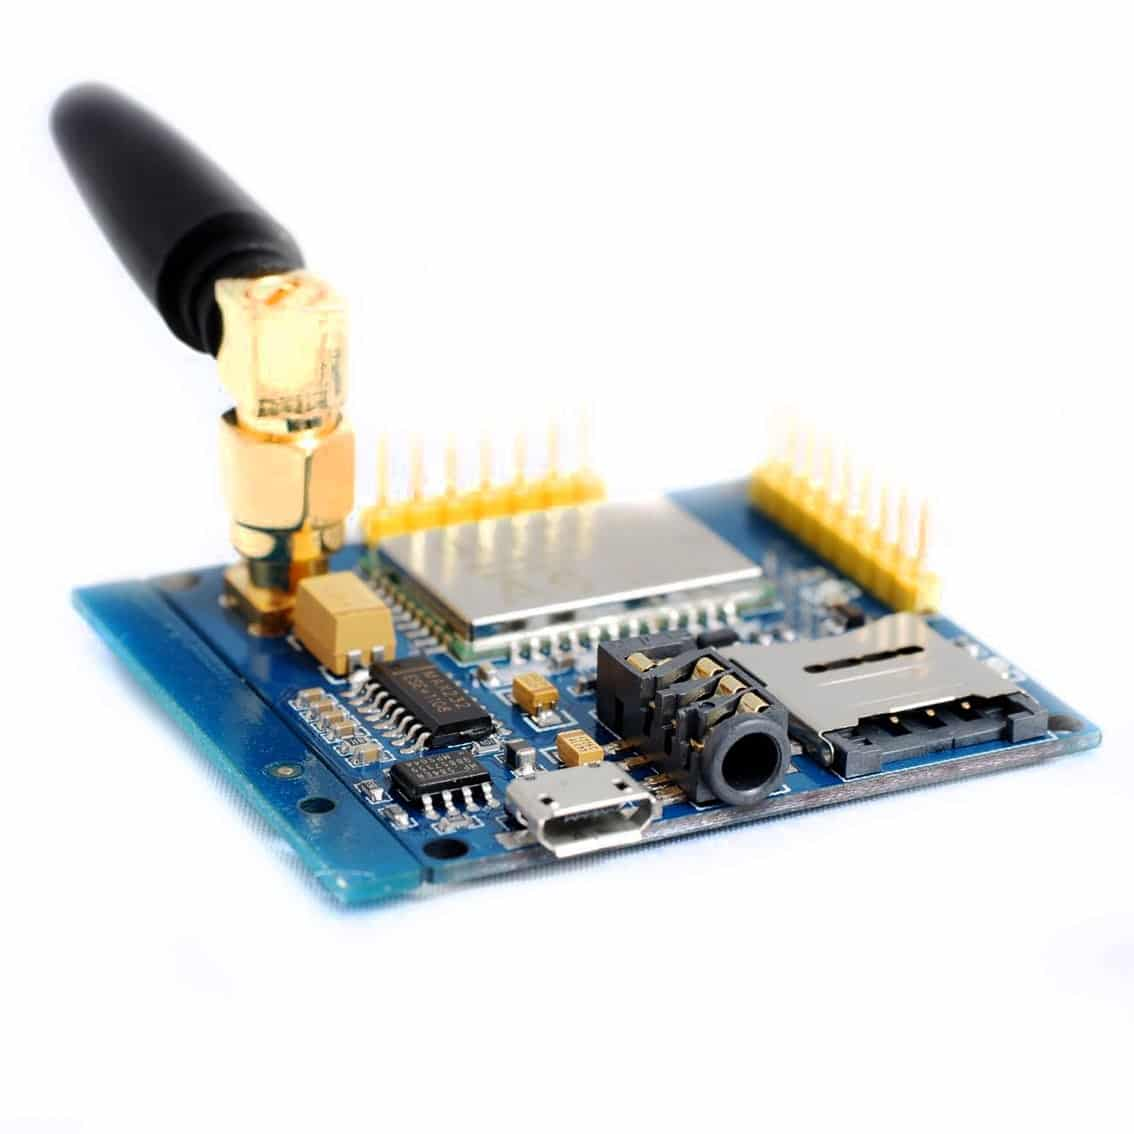 A6 GPRS/GSM Module Board with Antenna and Sim Card Slot Quad Band 850 900  1800 1900 MHz - Phipps Electronics